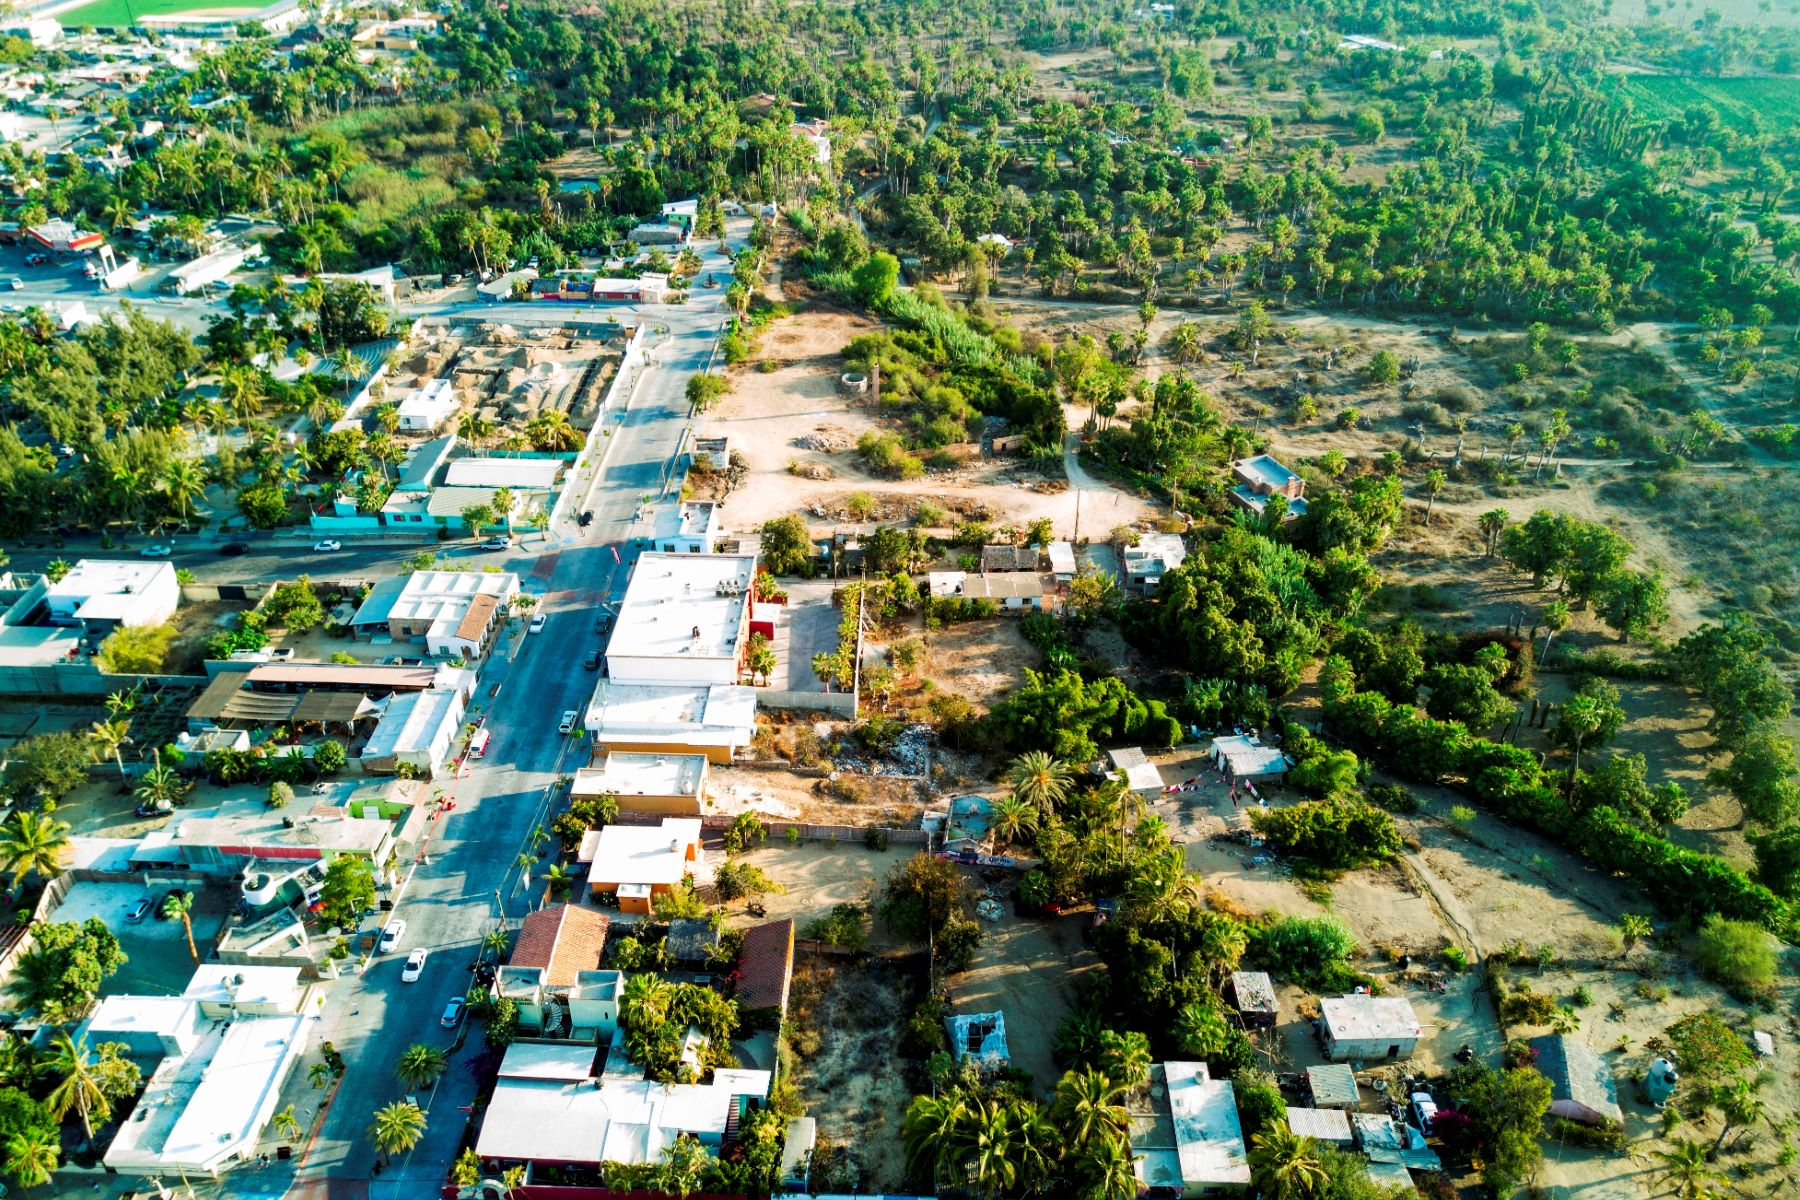 Land for Sale at City Lot - Other Mexico, Other Areas In Mexico 23300 Mexico